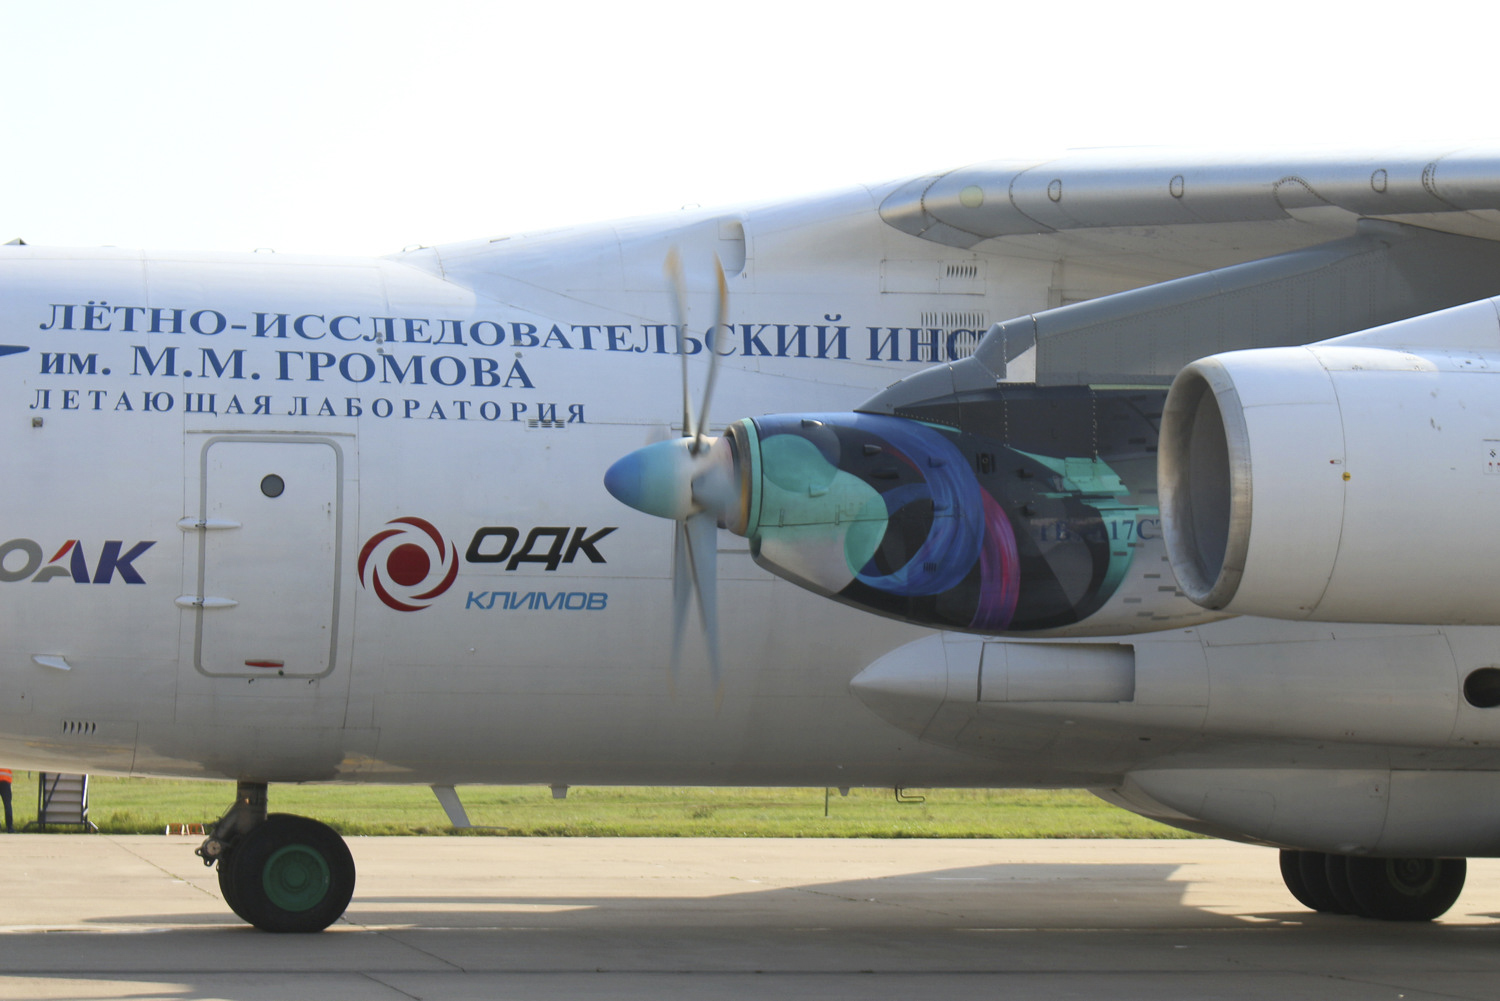 The Flight Tests Of Tv7 117st Engine Started Russian Aviation How A Propeller Works And Engineering As Part Power Plant In Conjunction With Ab112 Developed By Pjsc Npp Aerosila Which Has More